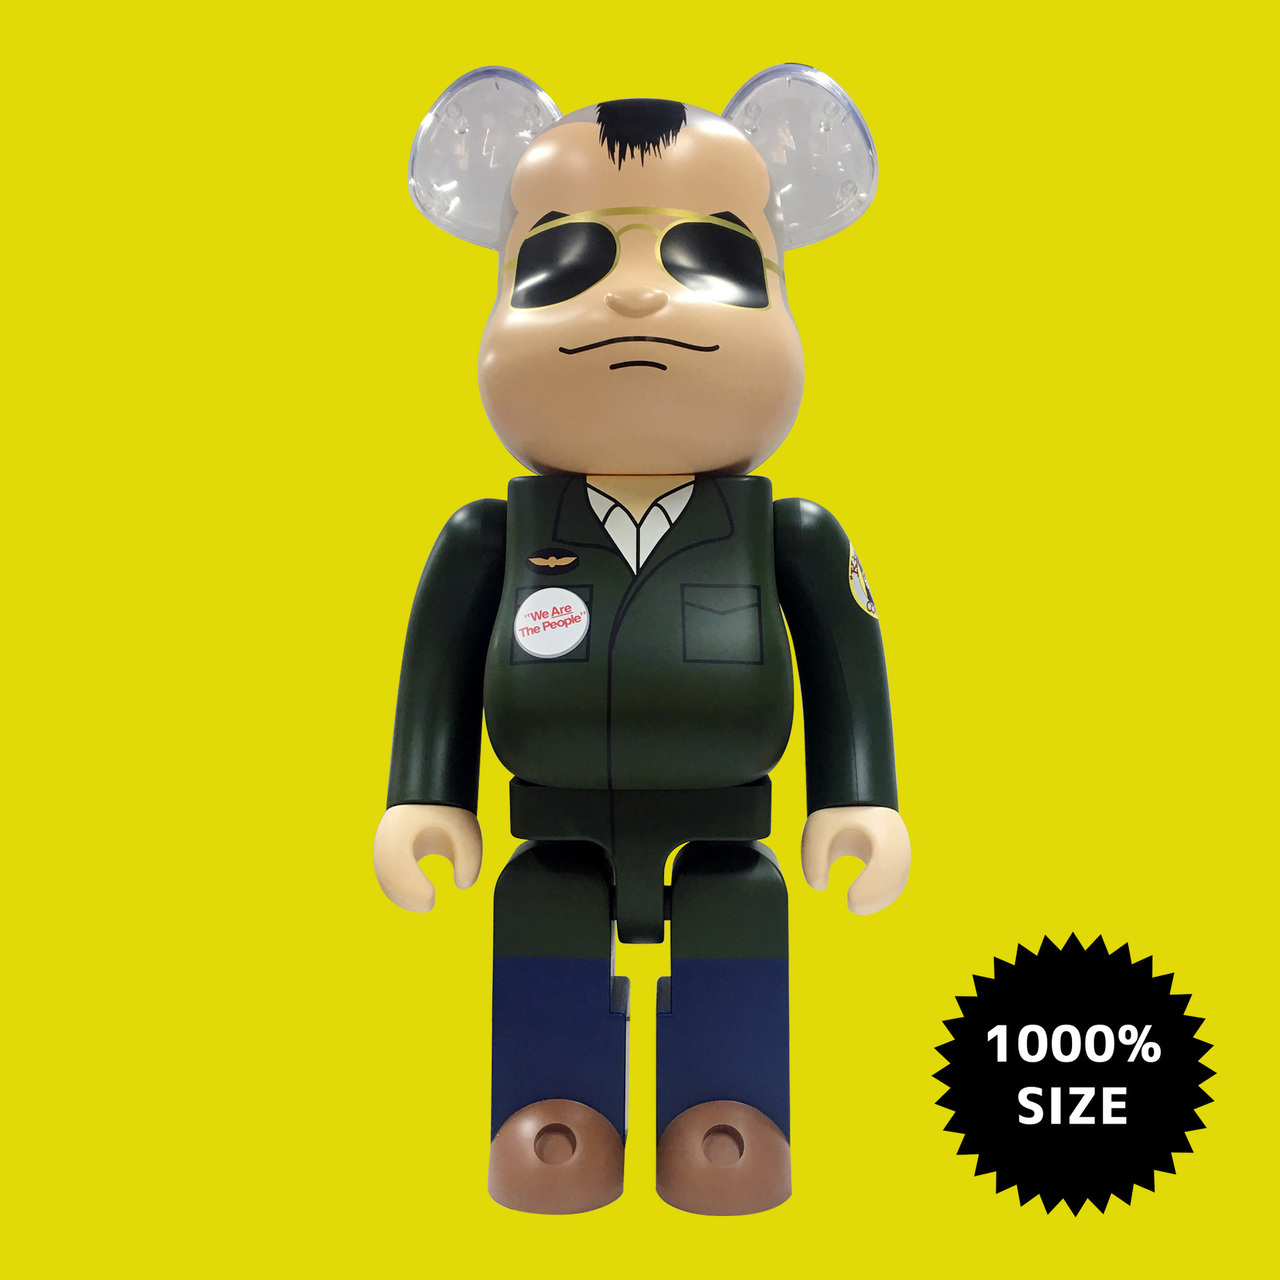 Medicom Toy: Bearbrick - Taxi Driver Travis Bickle 1000% image black and white library